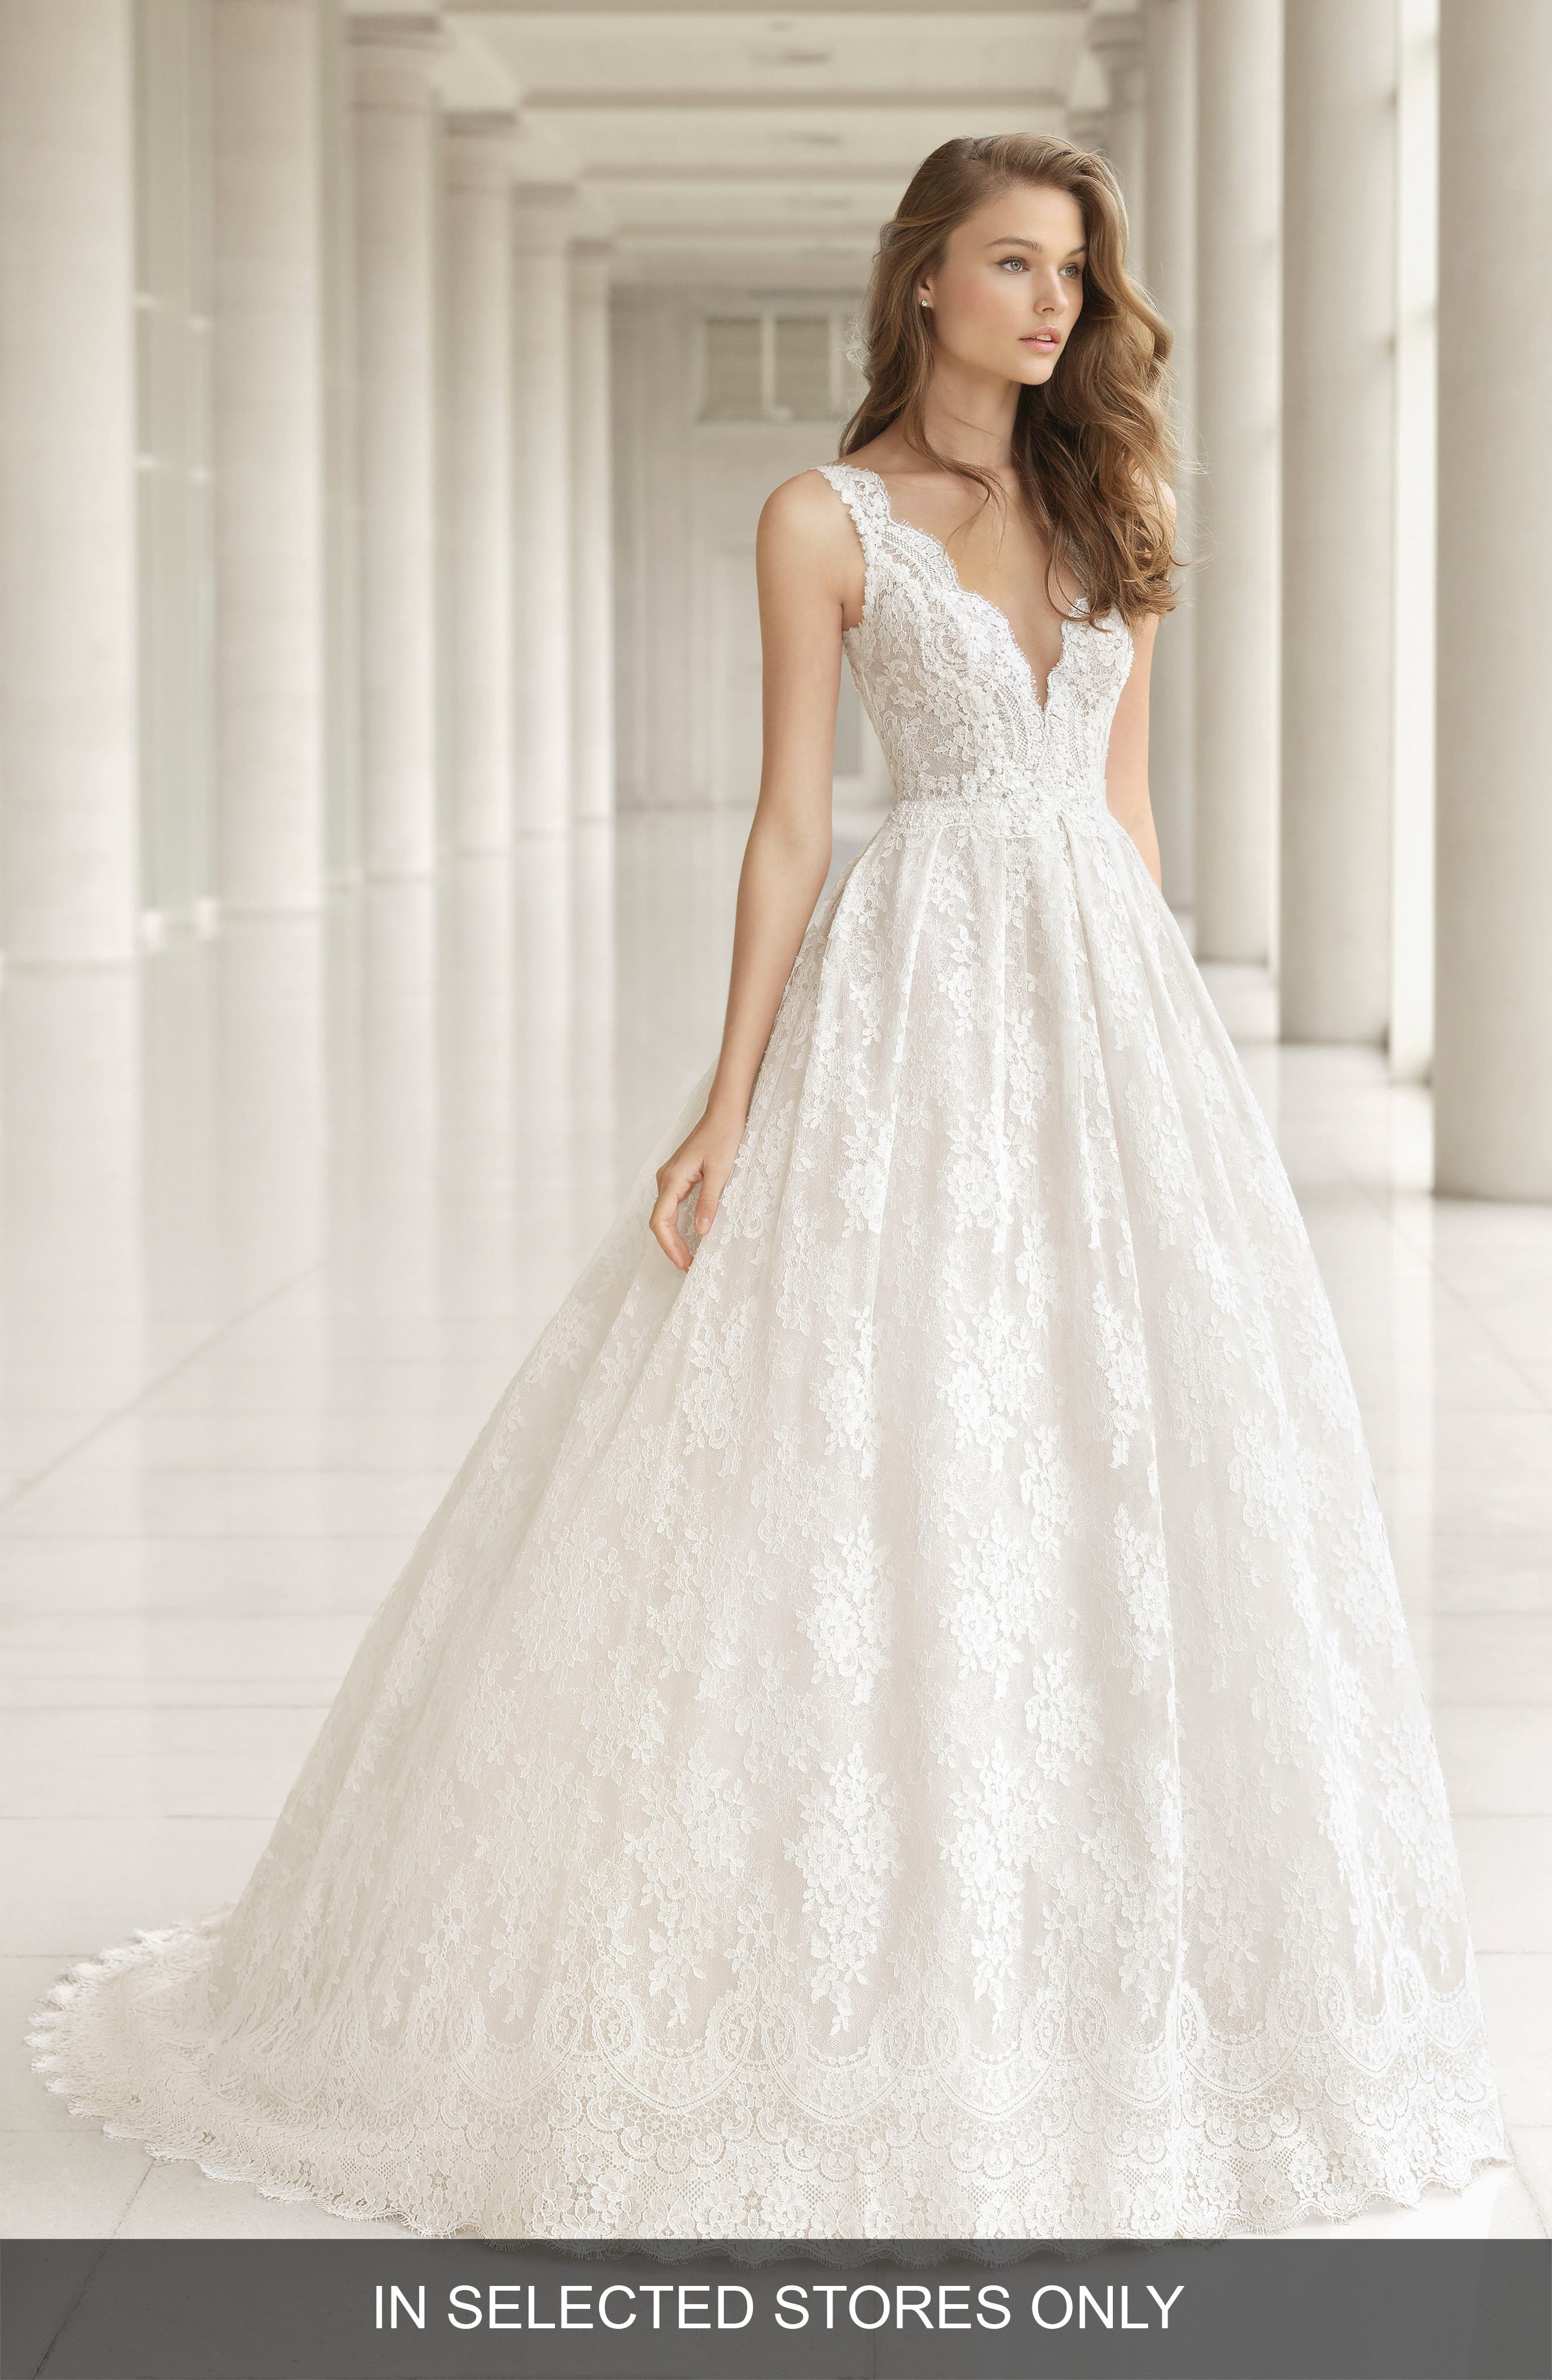 Alternate Image 1 Selected - Rosa Clara Embellished Lace Princess Gown